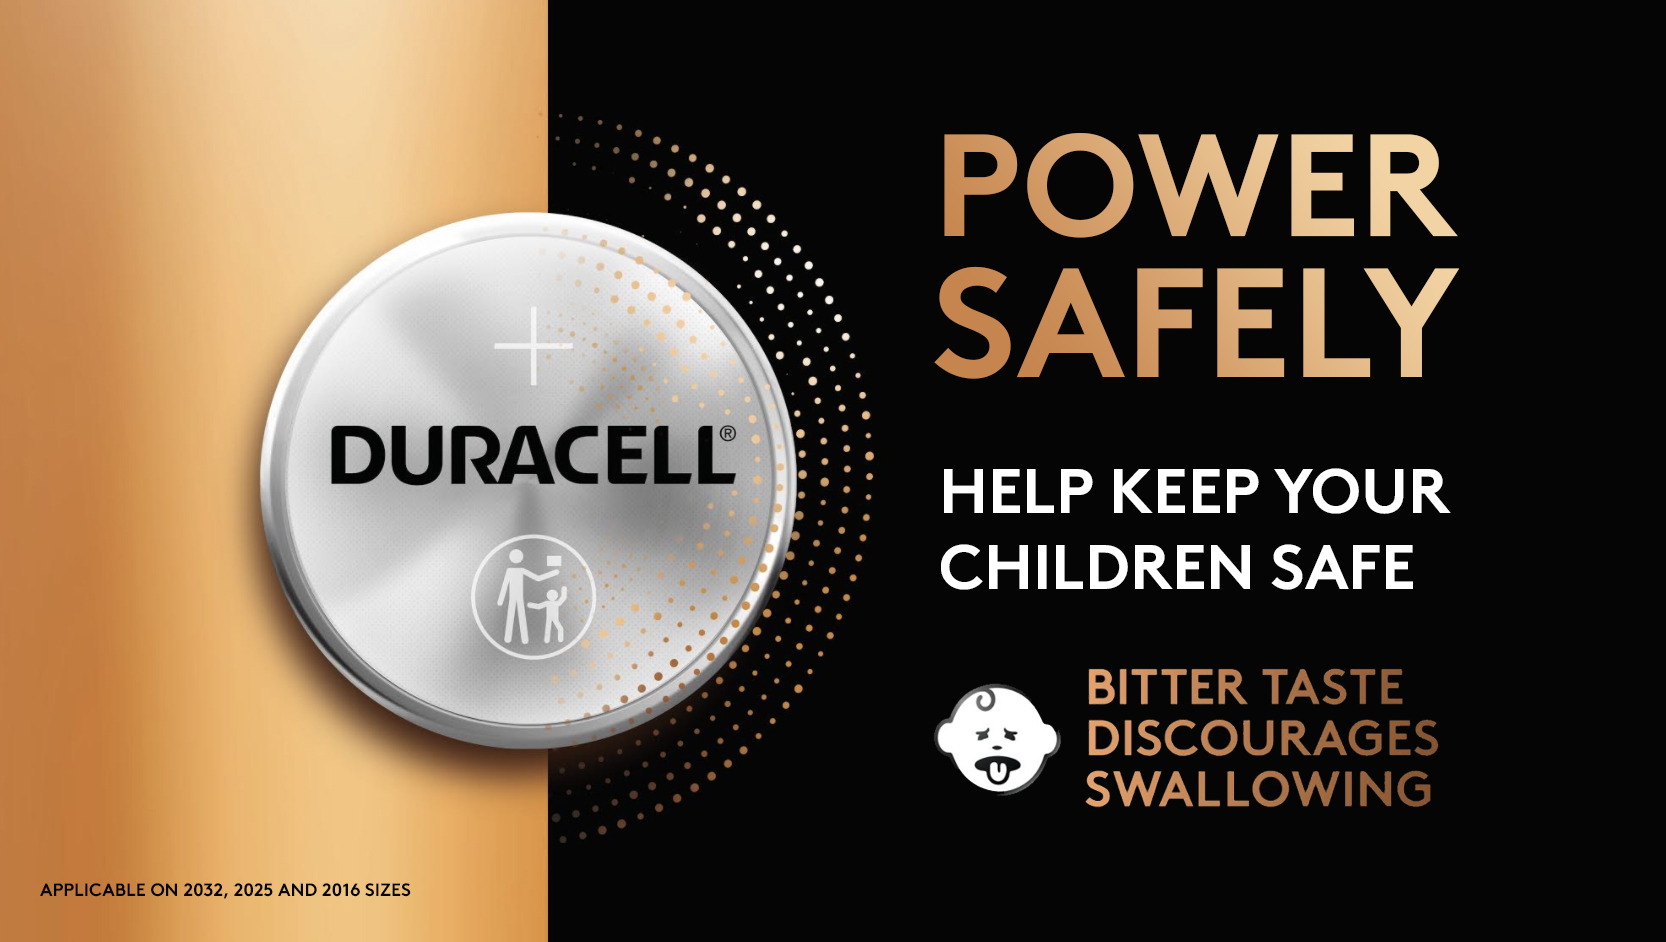 Power Safely. Help keep your children safe. Bitter taste discourages swallowing.